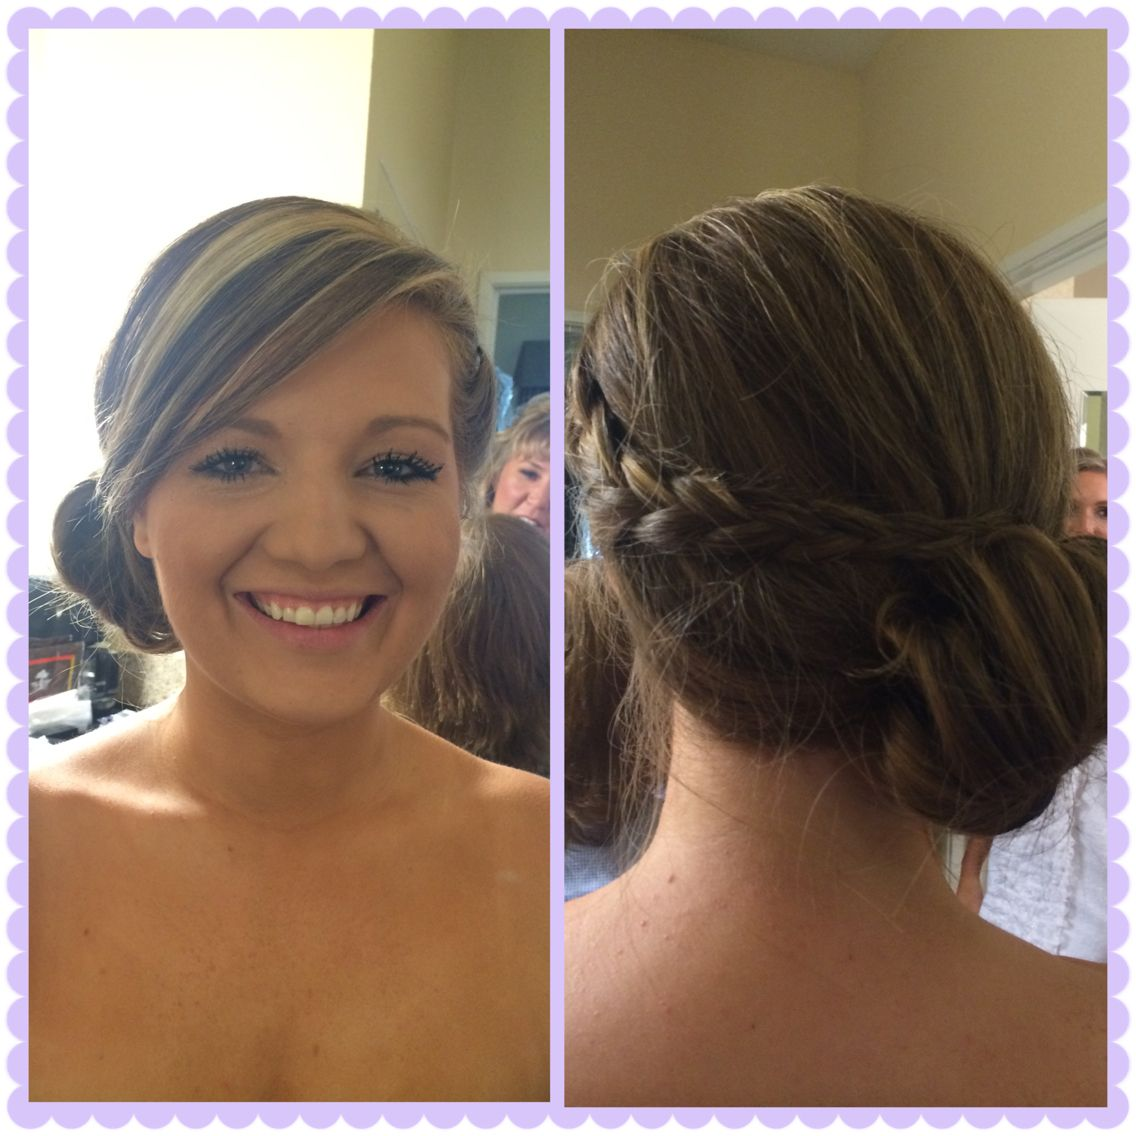 #bridalpartyhairandmakeup #makeupnmore www.make-up-n-more.com